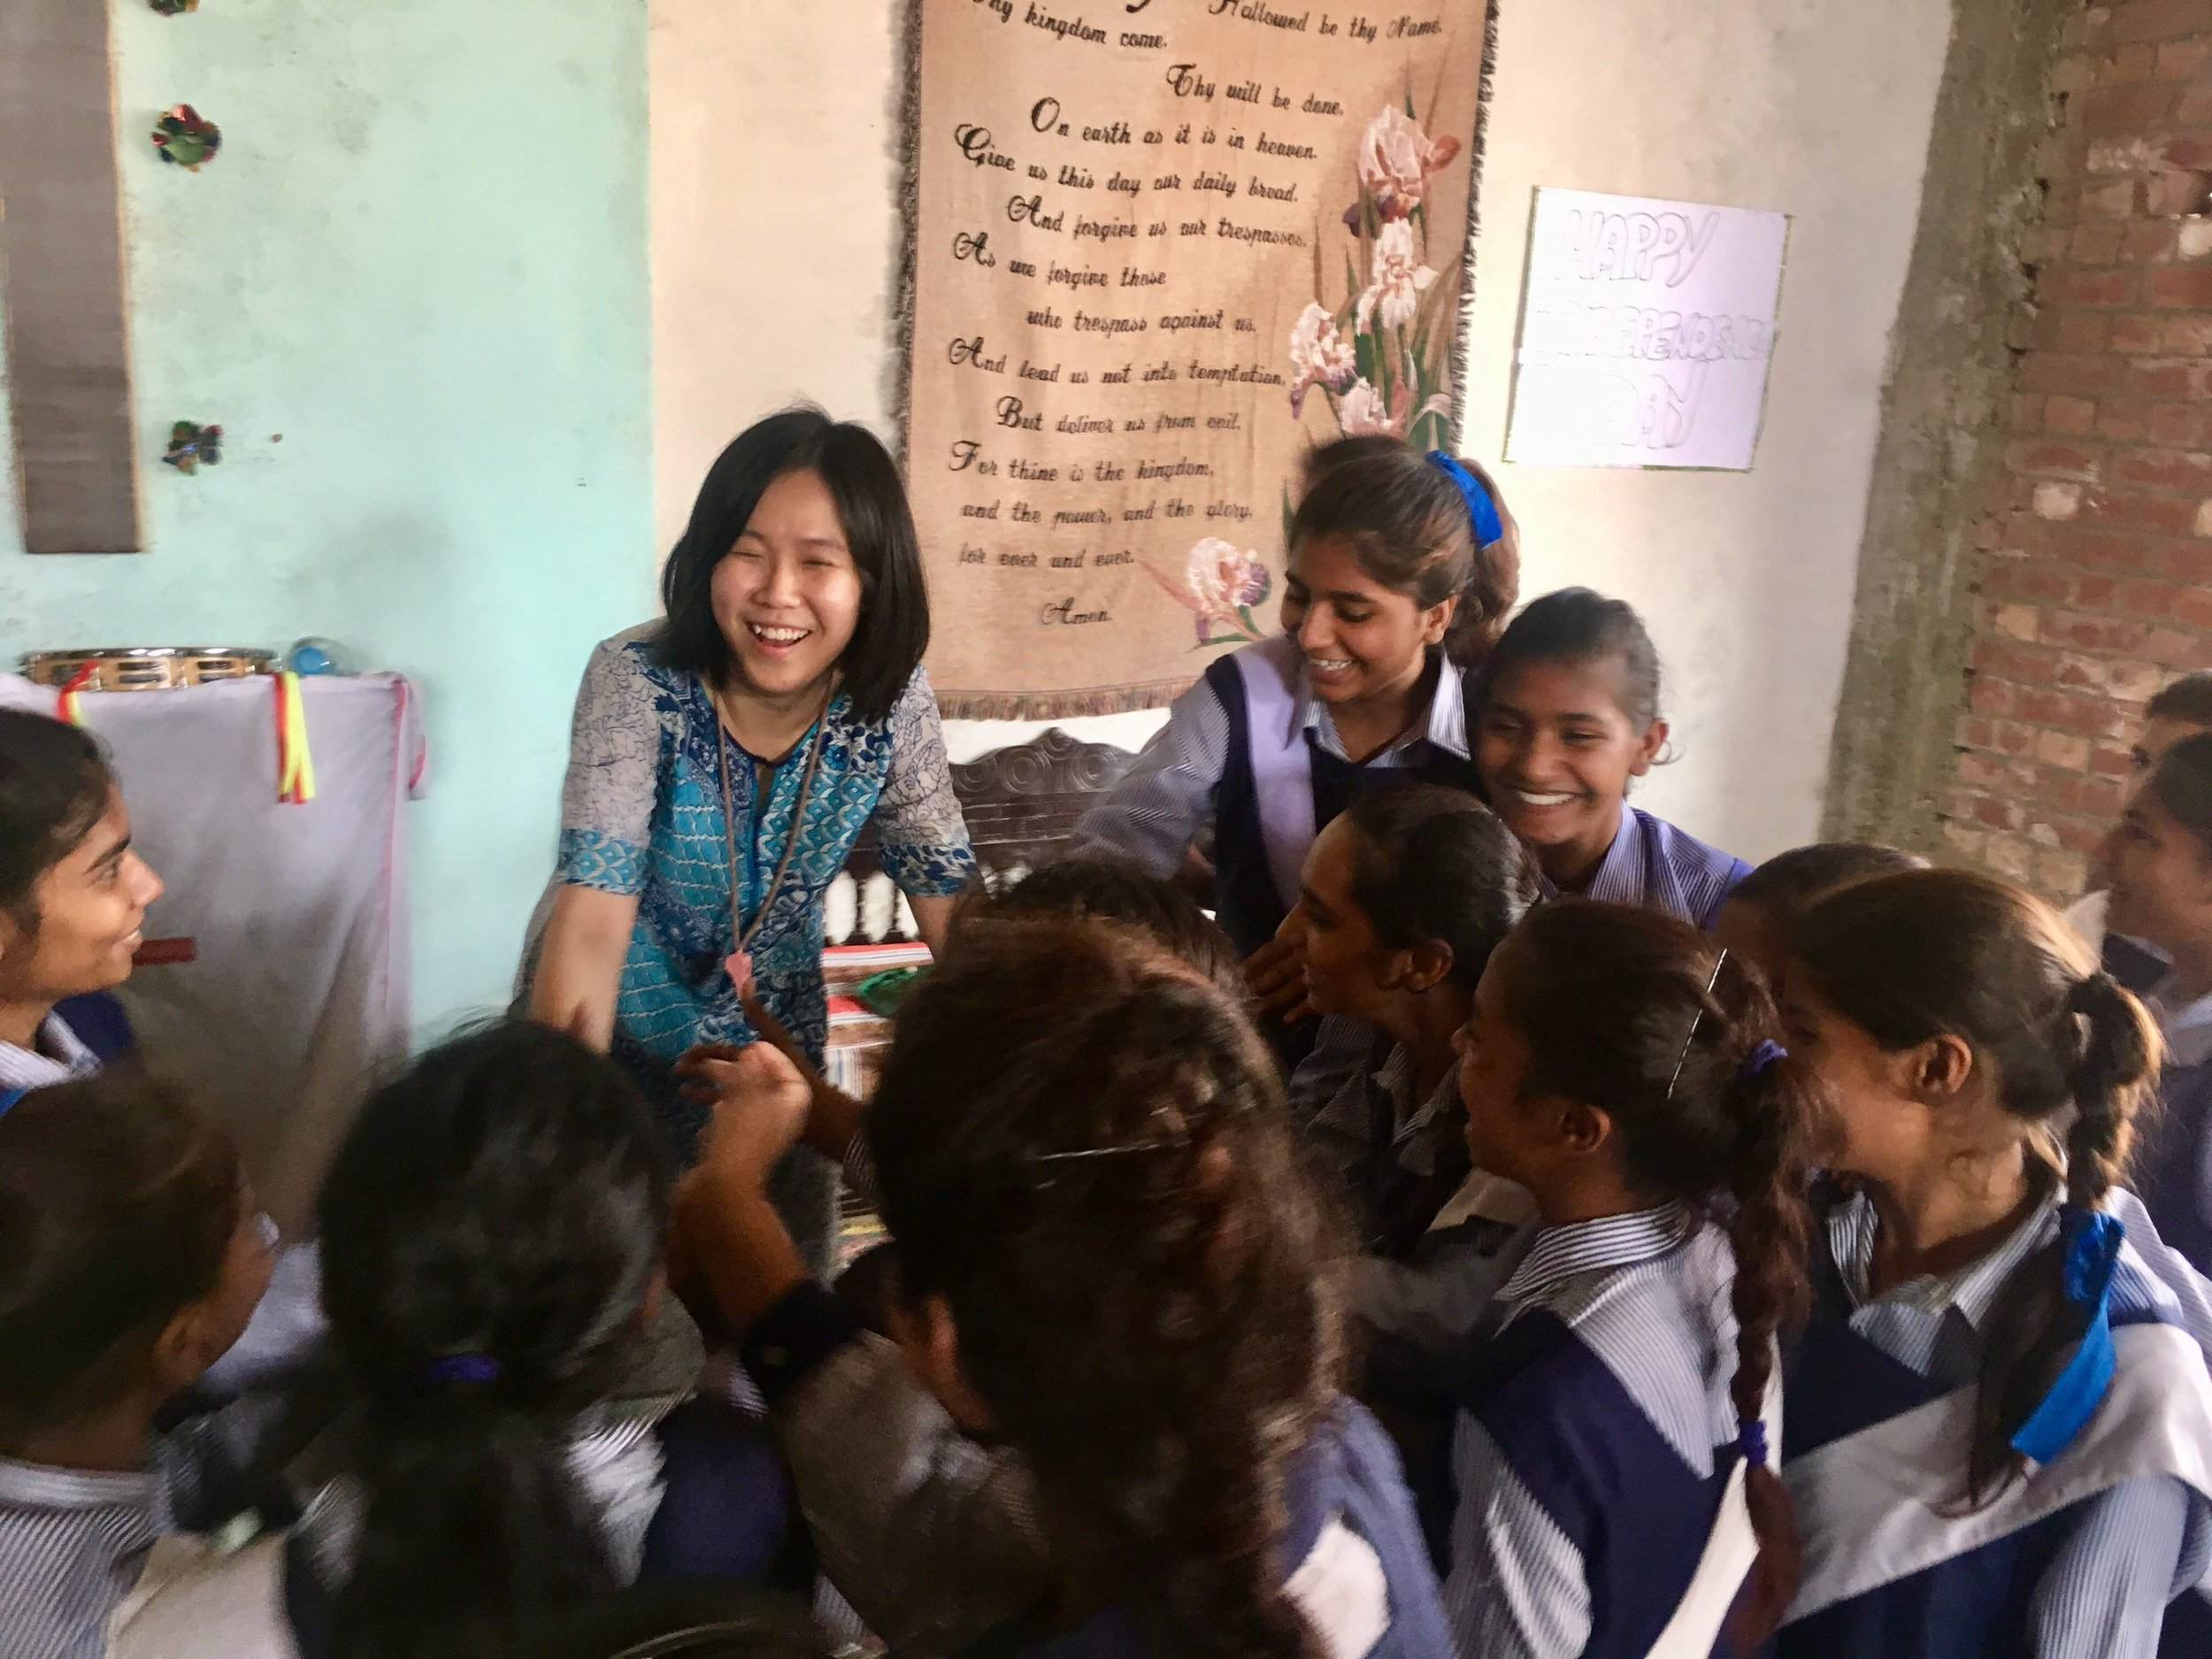 Above: Lee Wai Teng (BMus '16, Clarinet) with impoverished students in Pakistan